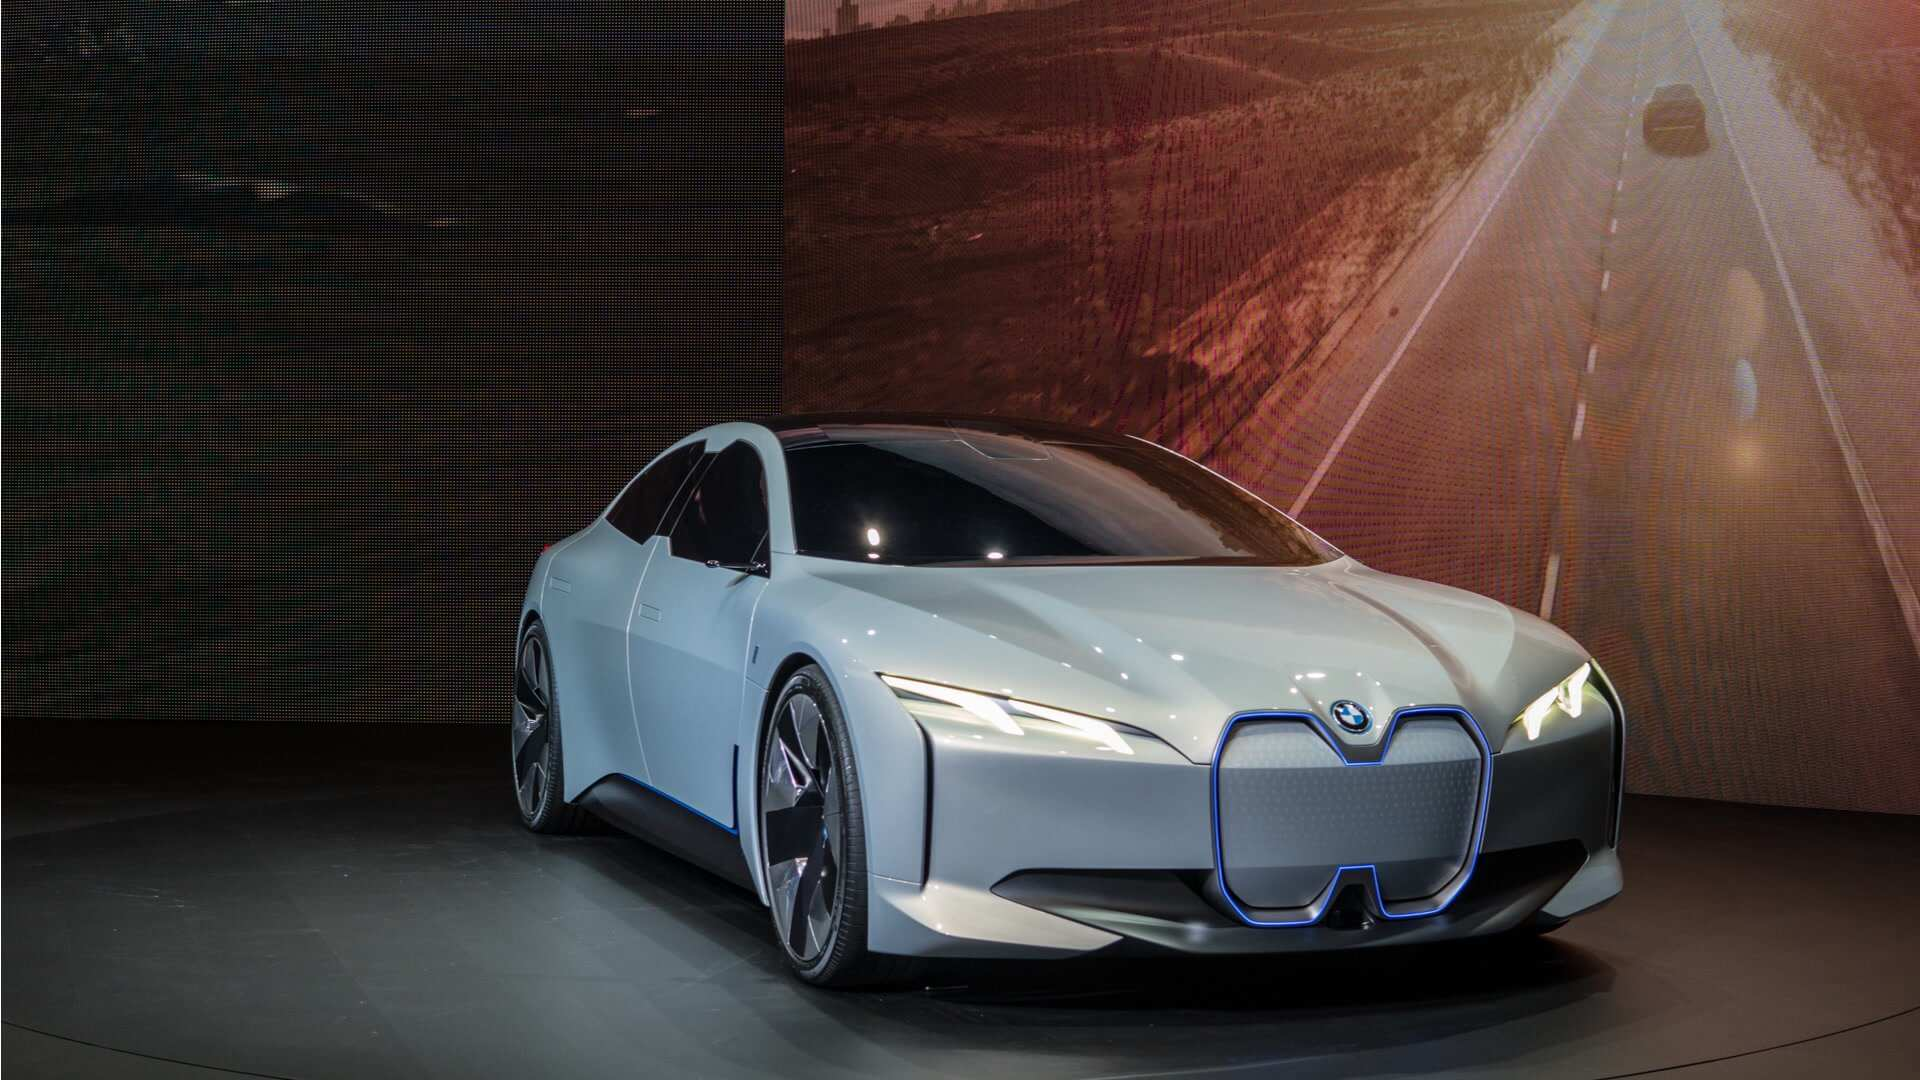 12 New 2019 Bmw Electric Car Specs and Review for 2019 Bmw Electric Car